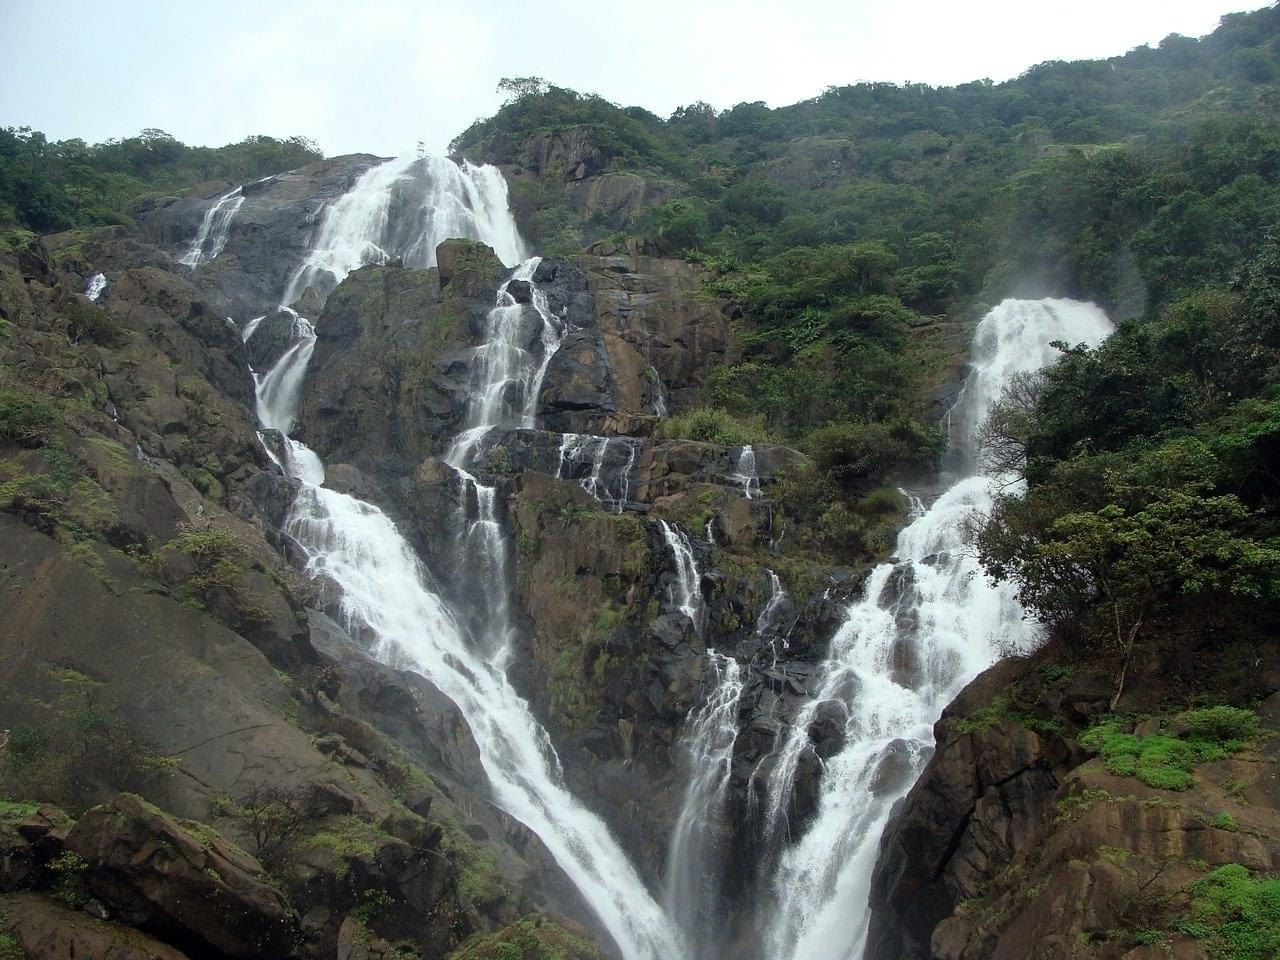 Thrilling-Goa-Tour-Package-with-Grand-Island-Tour-&-Dudhsagar-Falls-JustWravel-1597392075-7.jpg